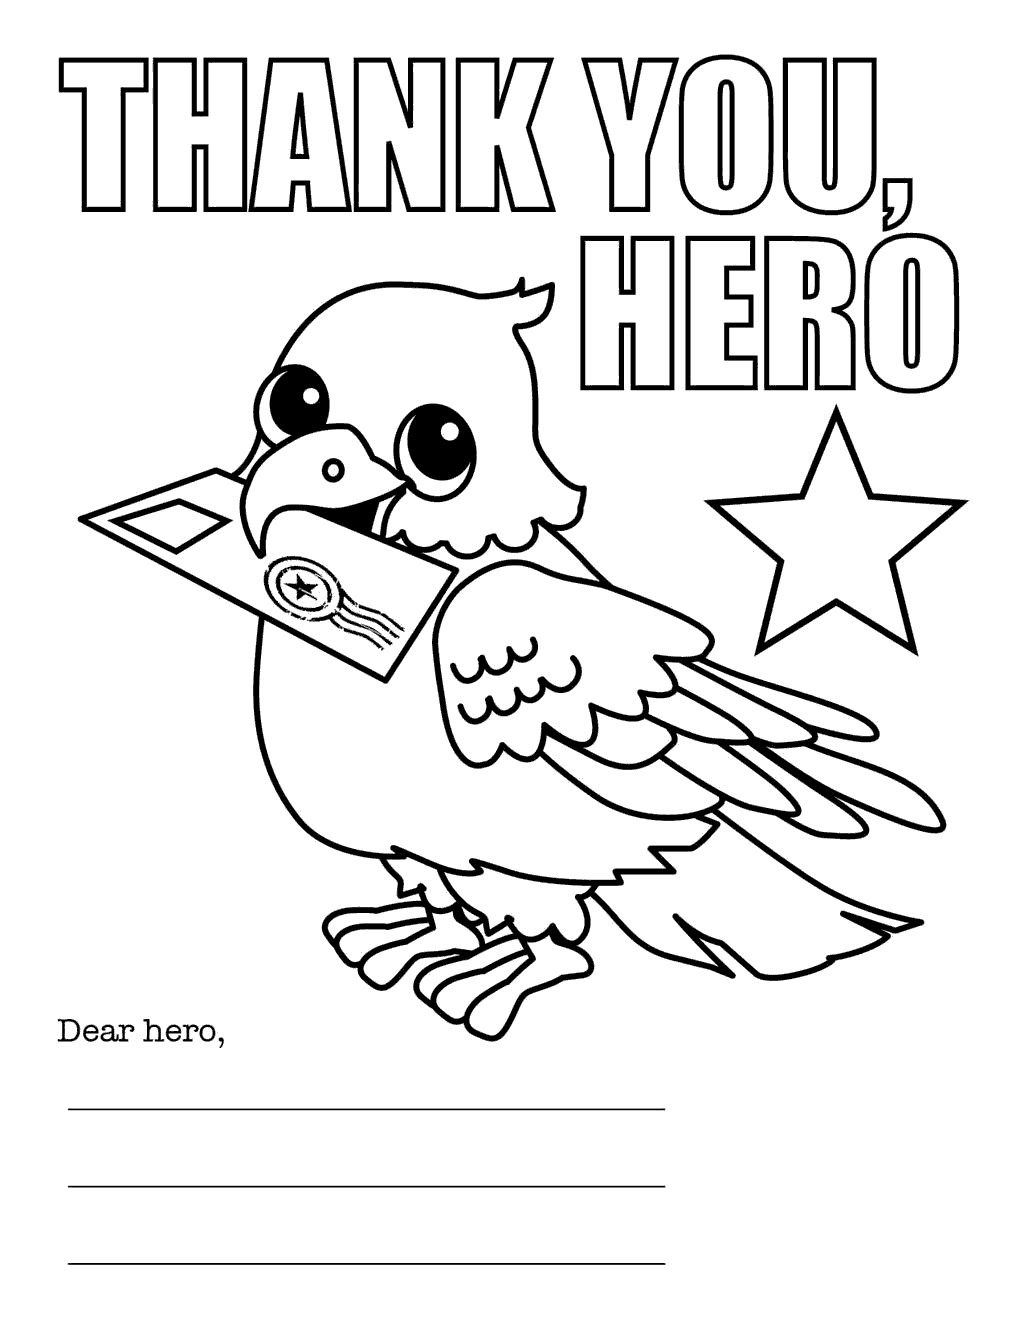 Veterans Day Coloring Pages Letter Thank You